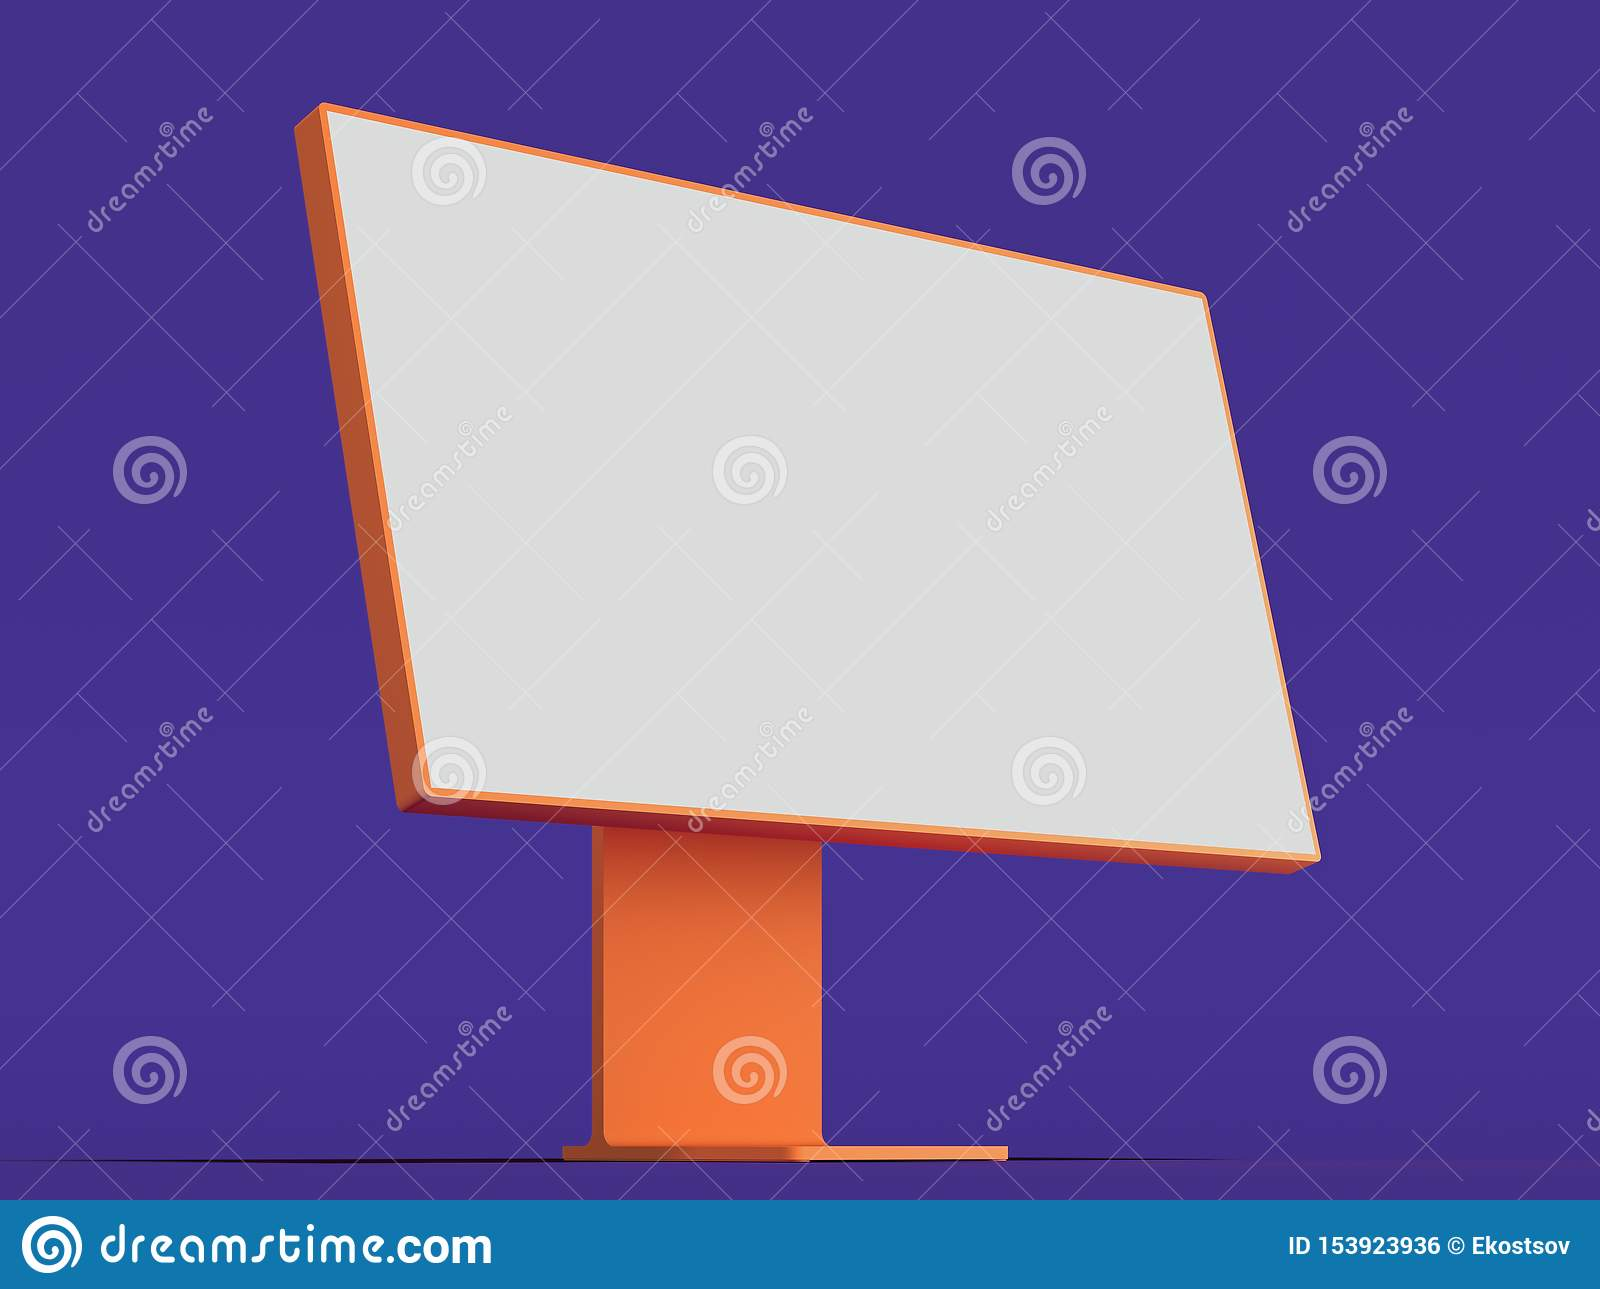 Realistic Pc With Big White Blank Monitor Keyboard And